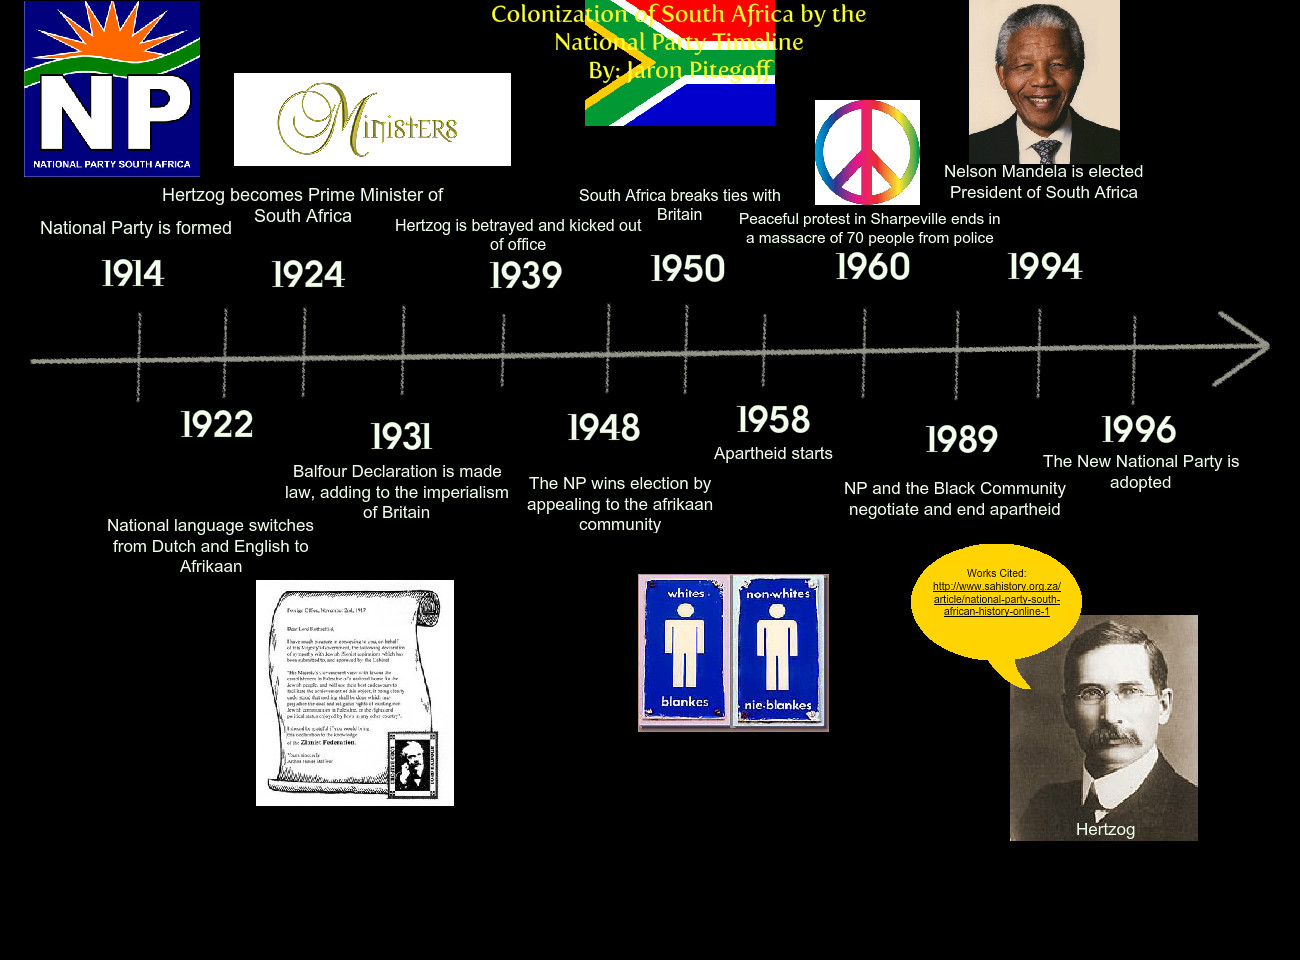 Colonization of south africa by national party timeline text colonization of south africa by national party timeline publicscrutiny Images